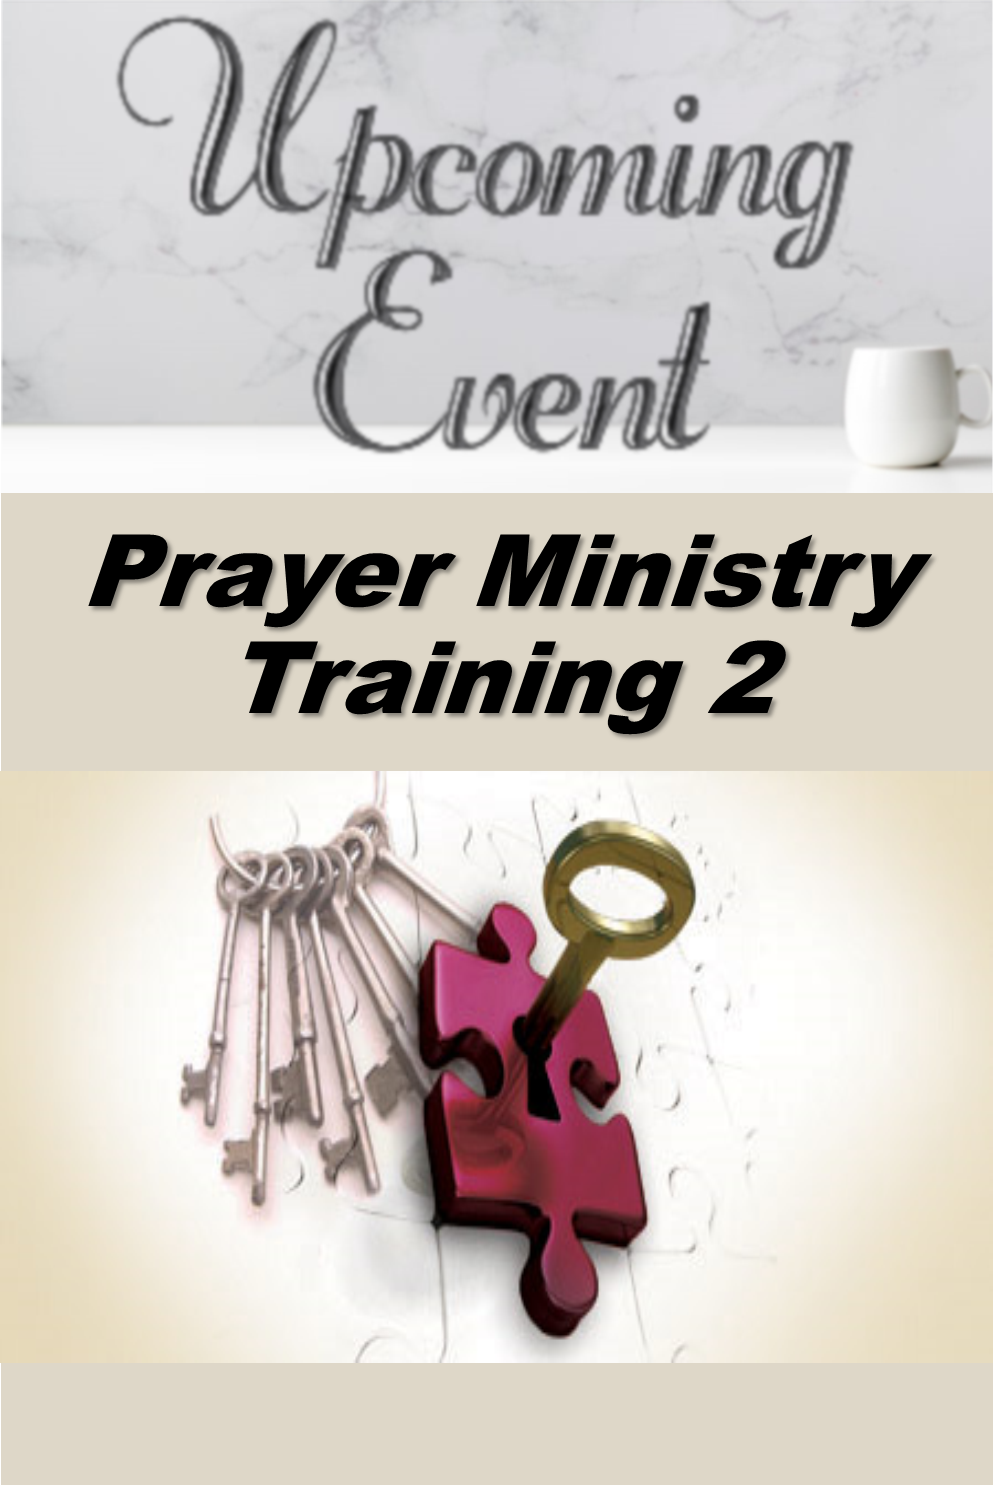 2020 Prayer Ministry Training 2